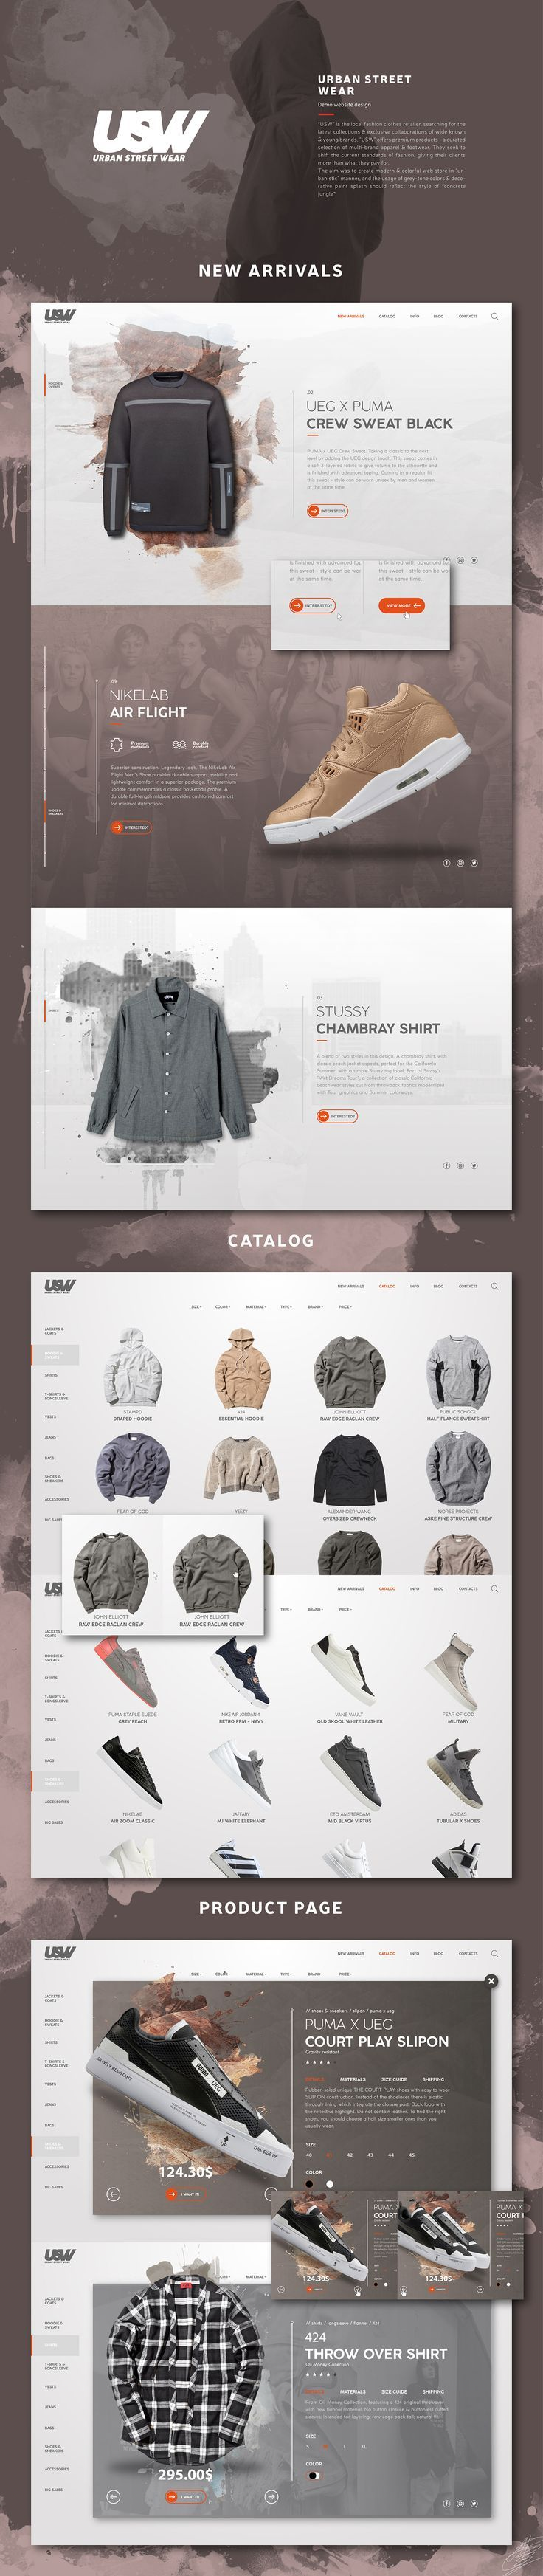 Image added in Web Design Collection in Web Design Category. The UX Blog podcast is also available on iTunes.